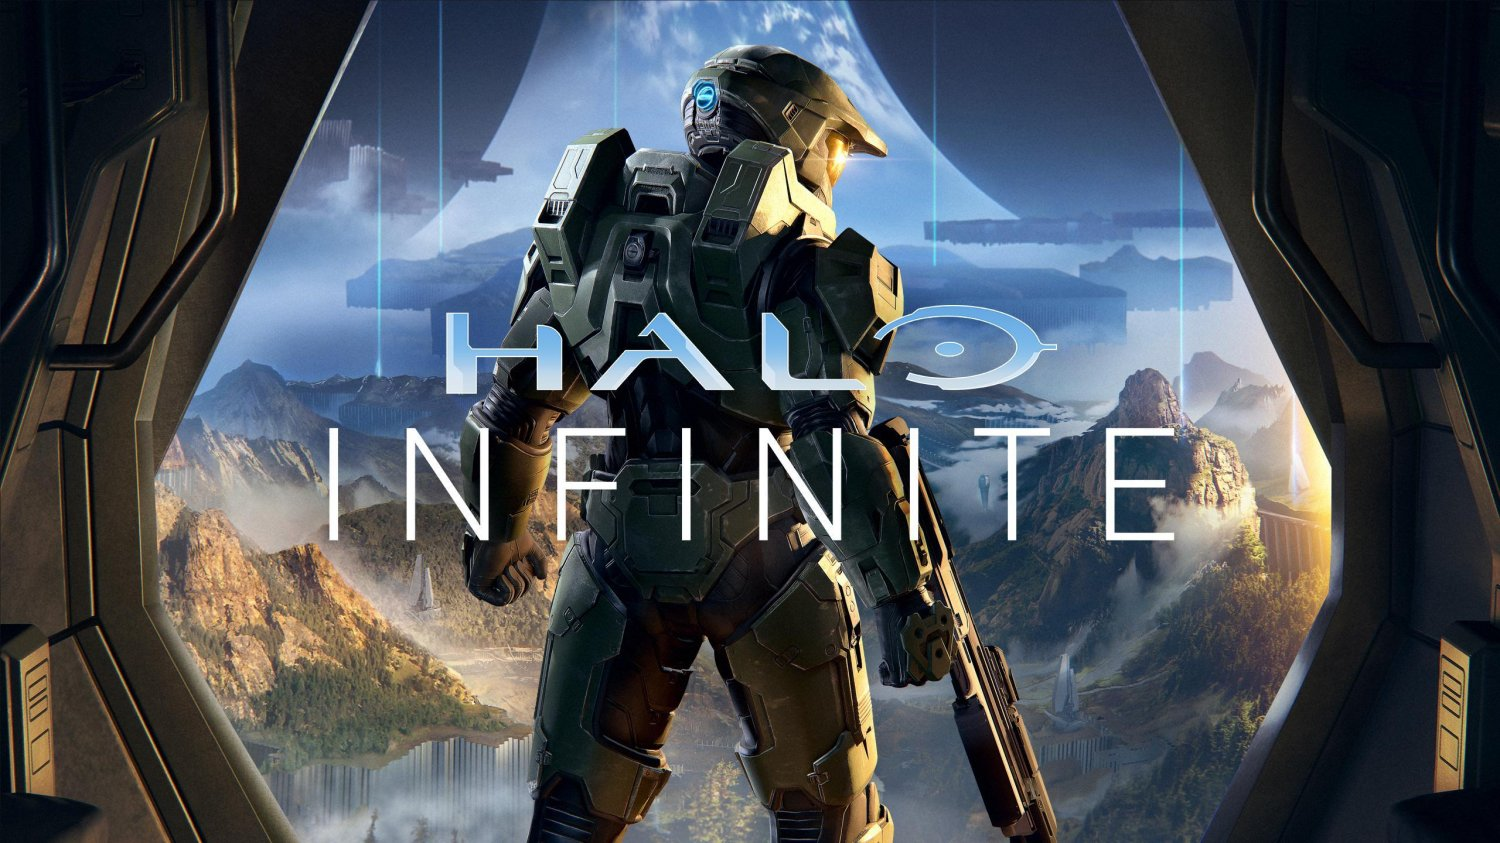 Halo Infinite  18x28 inches Poster Print